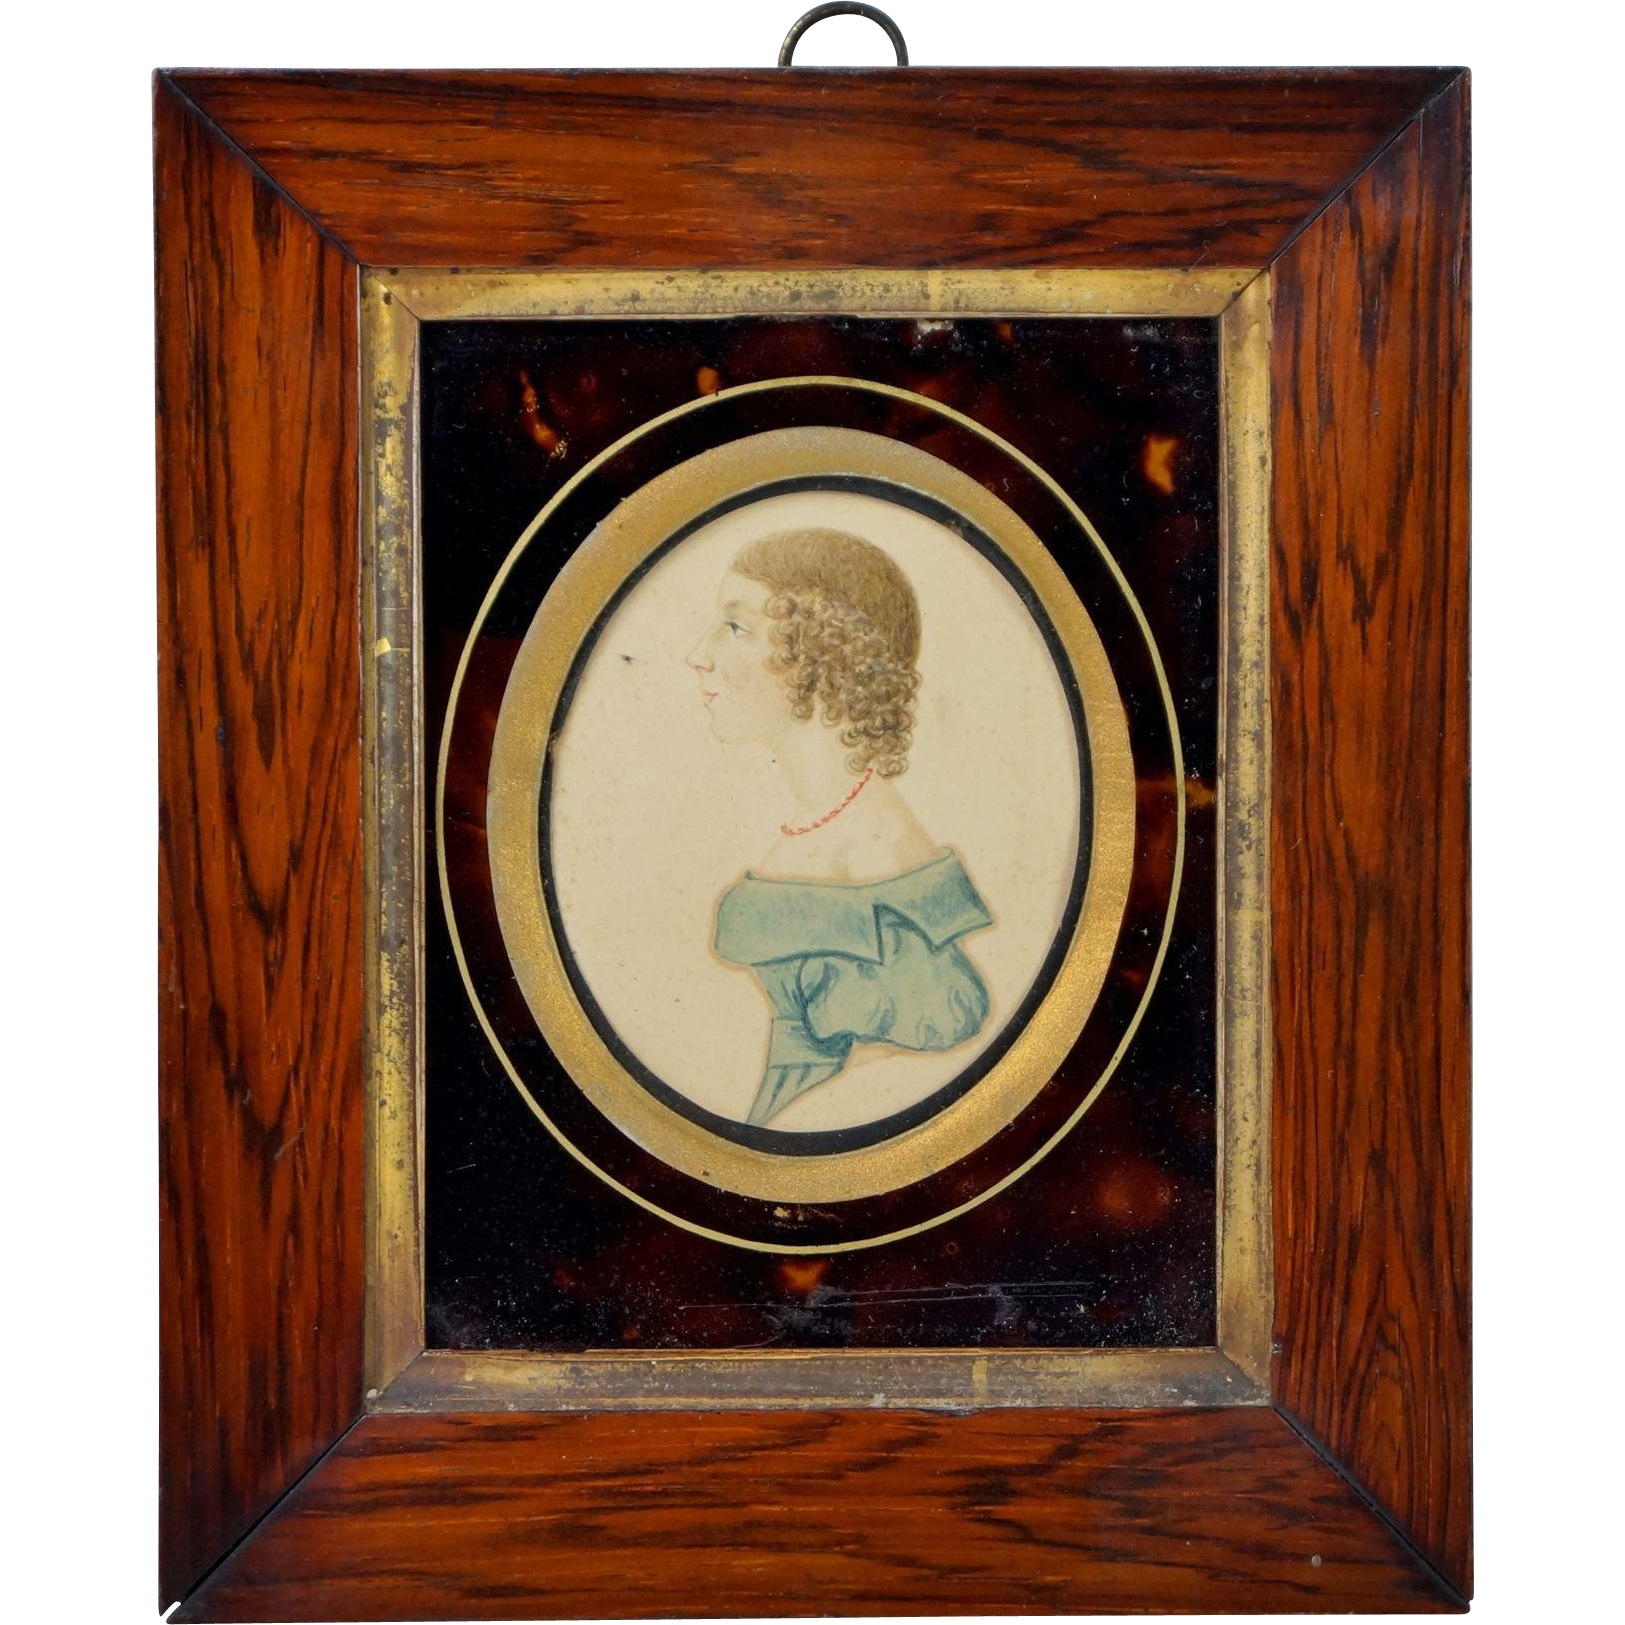 Antique Circa 1815 Portrait Miniature Watercolour Faux Effect Tortoiseshell Mount Regency Era